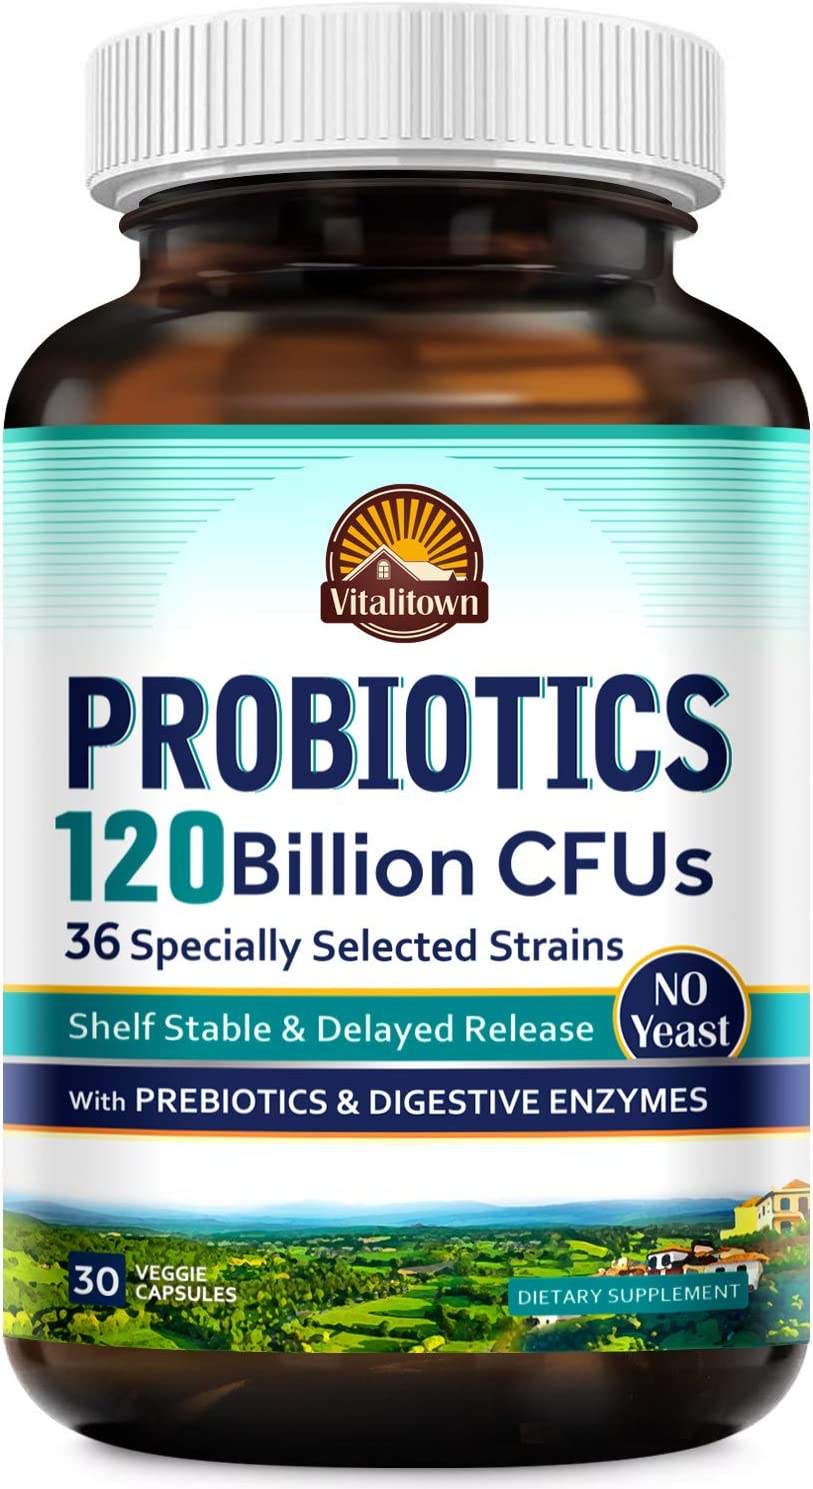 Vitalitown 120 Billion CFUs Probiotics | 36 Strains + Prebiotics + Digestive Enzymes for Men Women | Shelf Stable | Digestive & Immune Support | Vegan, Non-GMO, No Yeast | 30 Delayed Release Veg Caps